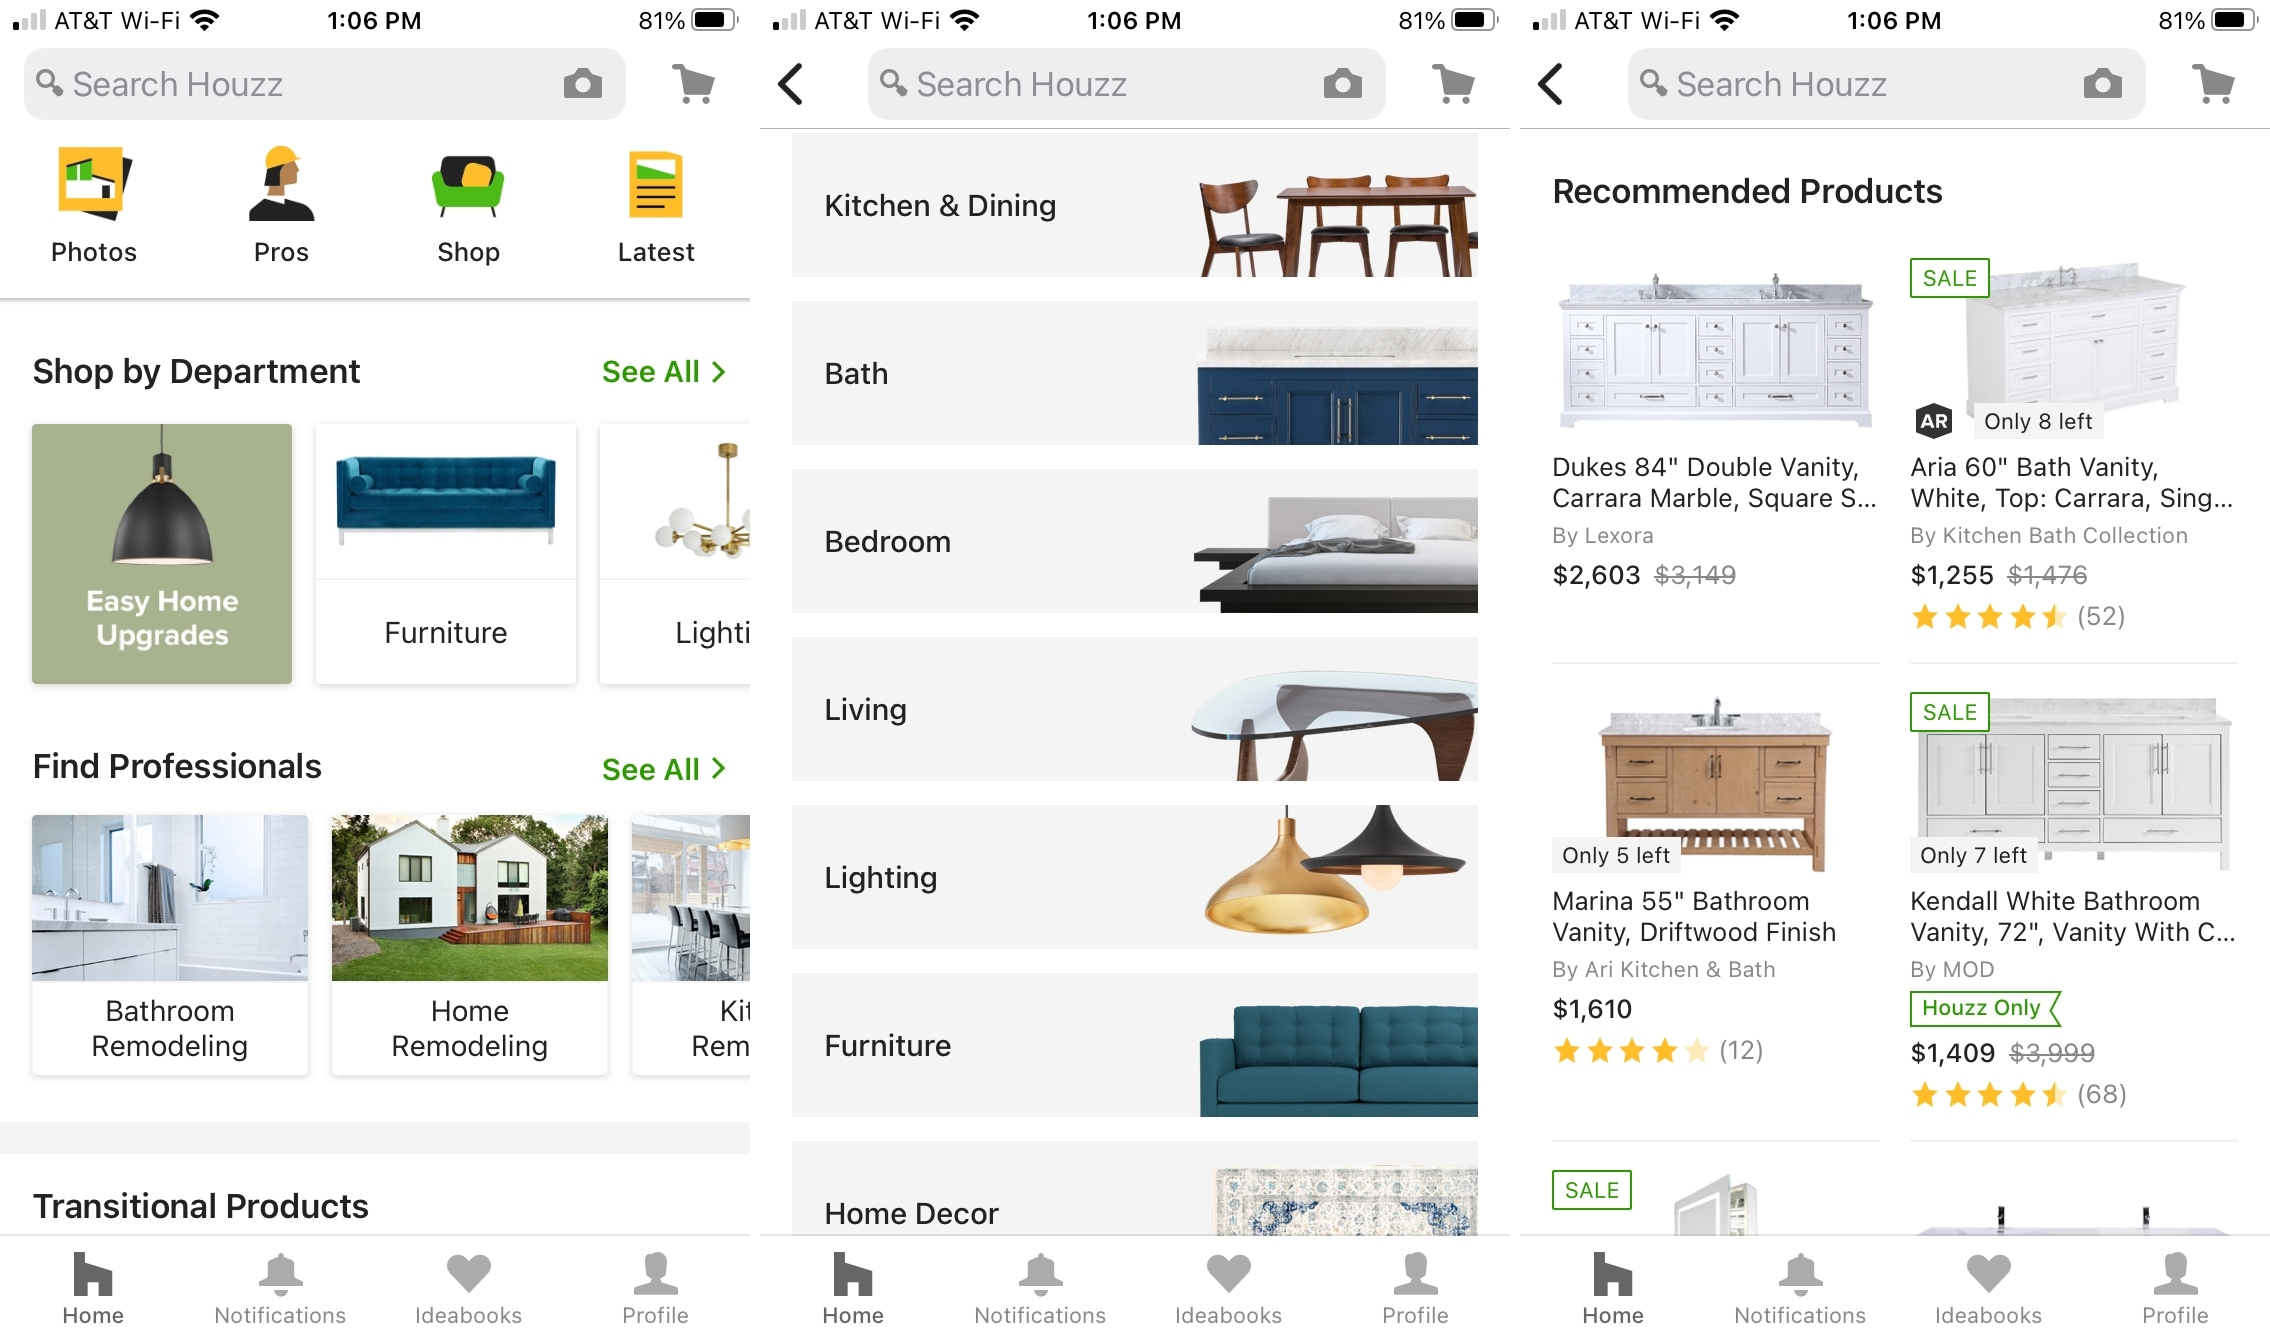 Houzz - Home Design & Remodel on iPhone